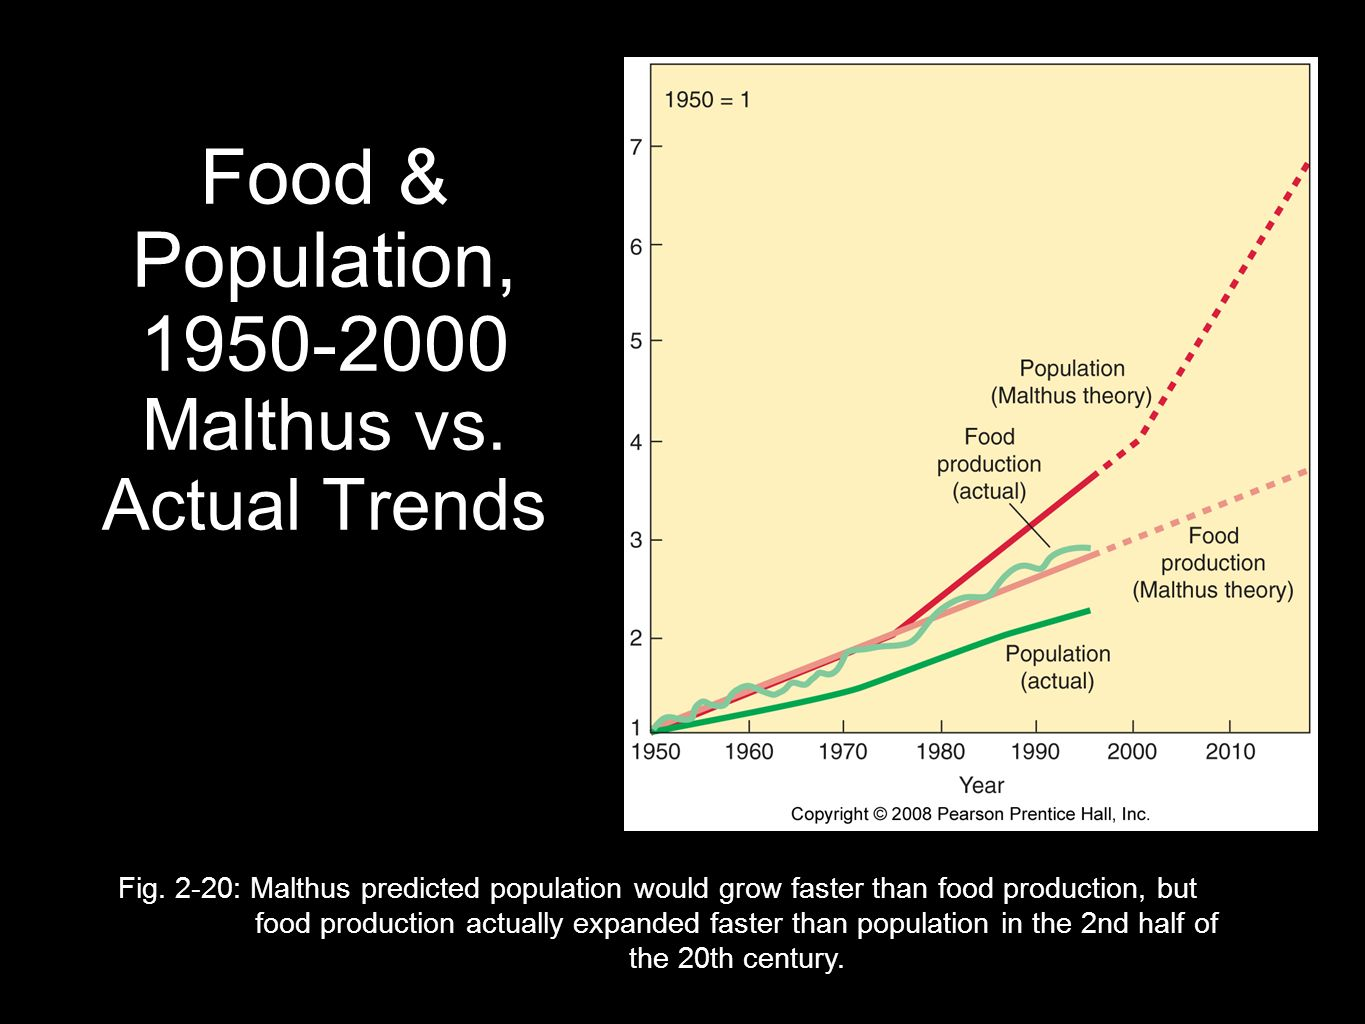 Food & Population, Malthus vs. Actual Trends